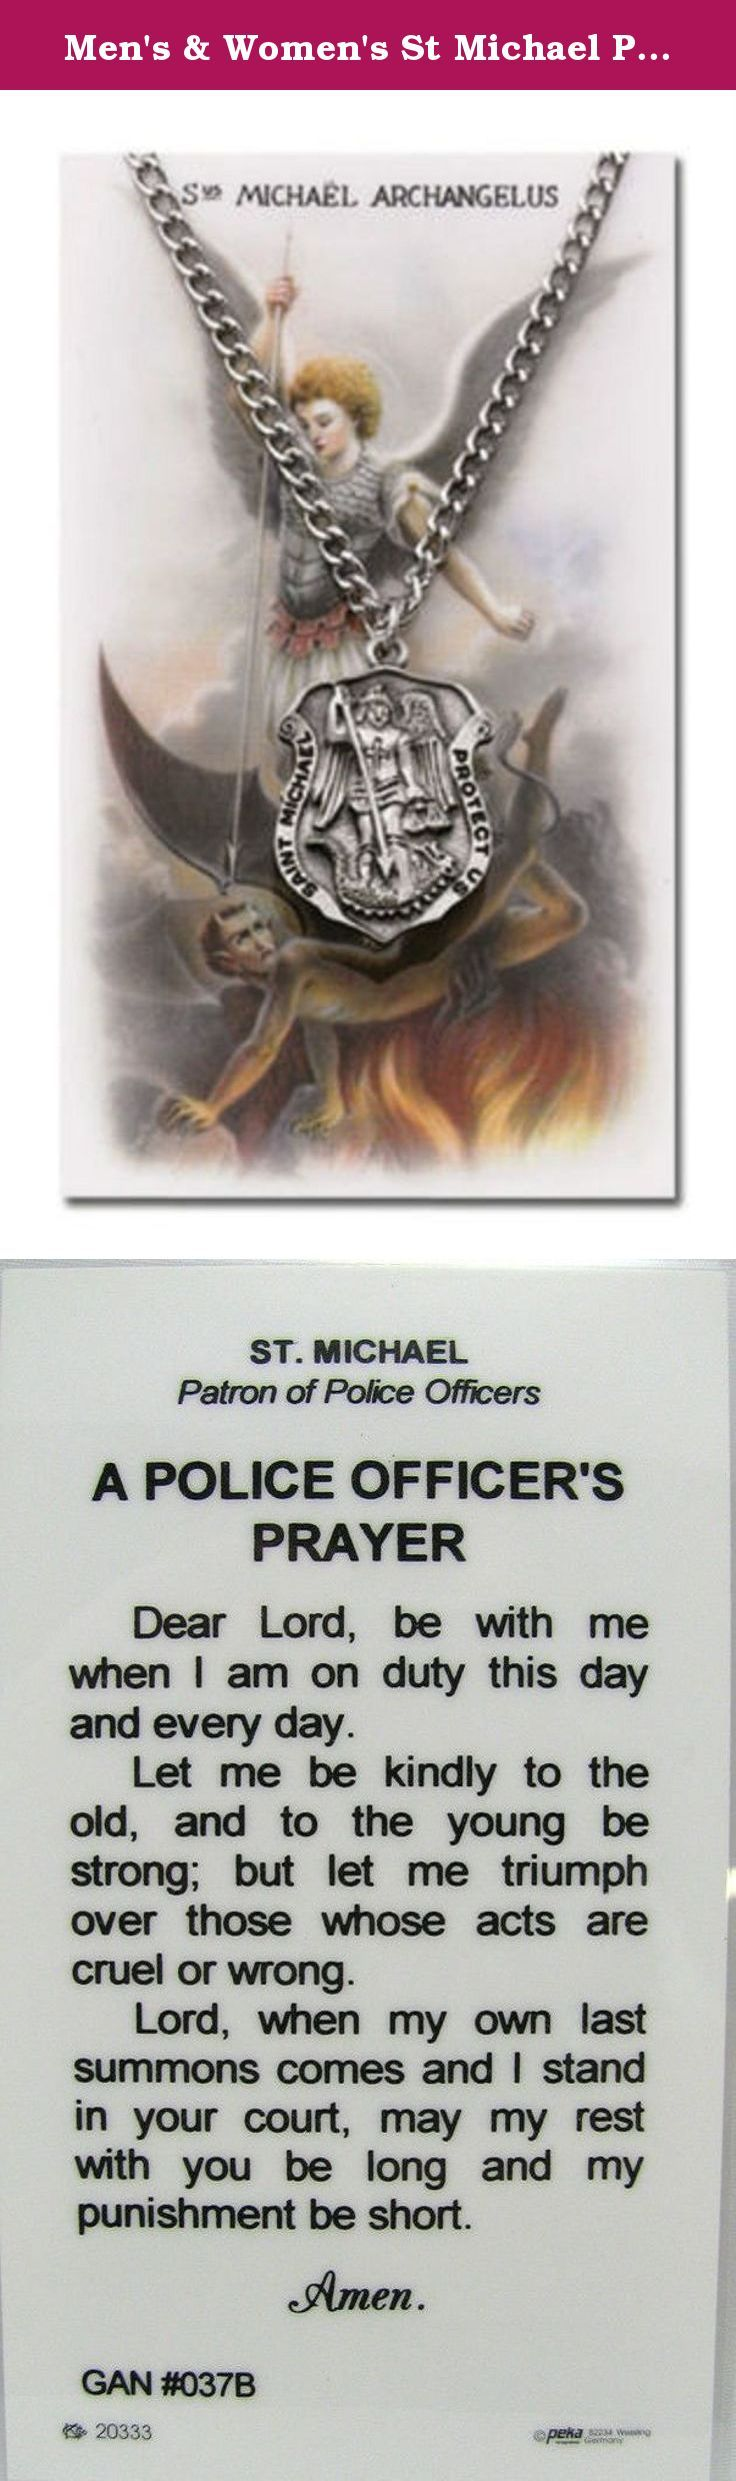 """Men's & Women's St Michael Police Officer Service Necklace & Prayer Card Set. We have combined genuine pewter medals on 24"""" chain with matching laminated cards (2 3/4"""" x 4 1/2"""" approximate size). Necklace says: saint michael - protect us. Back of cards says: st. Michael patron of police officers a police officers prayer dear lord, be with me when i am on duty this day and every day. let me be kindly to the old, and to the young be strong: but let me triumph over those whose acts are cruel…"""